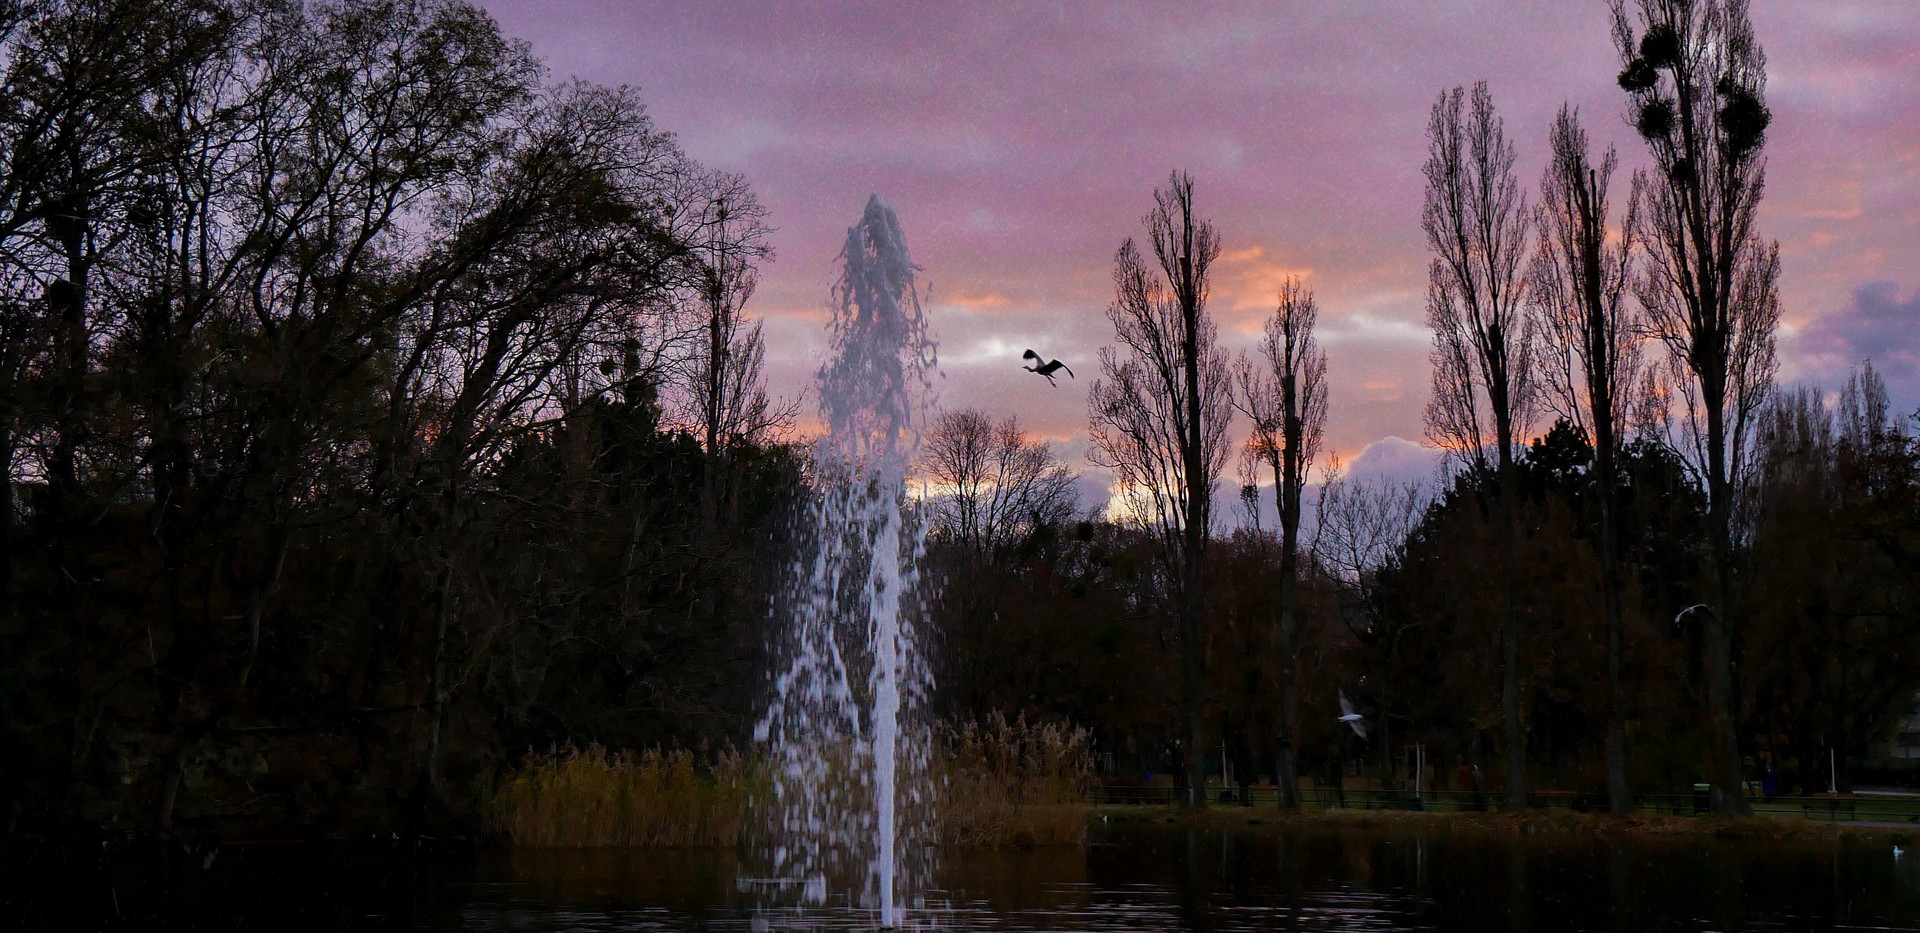 Sunset at the duck pond